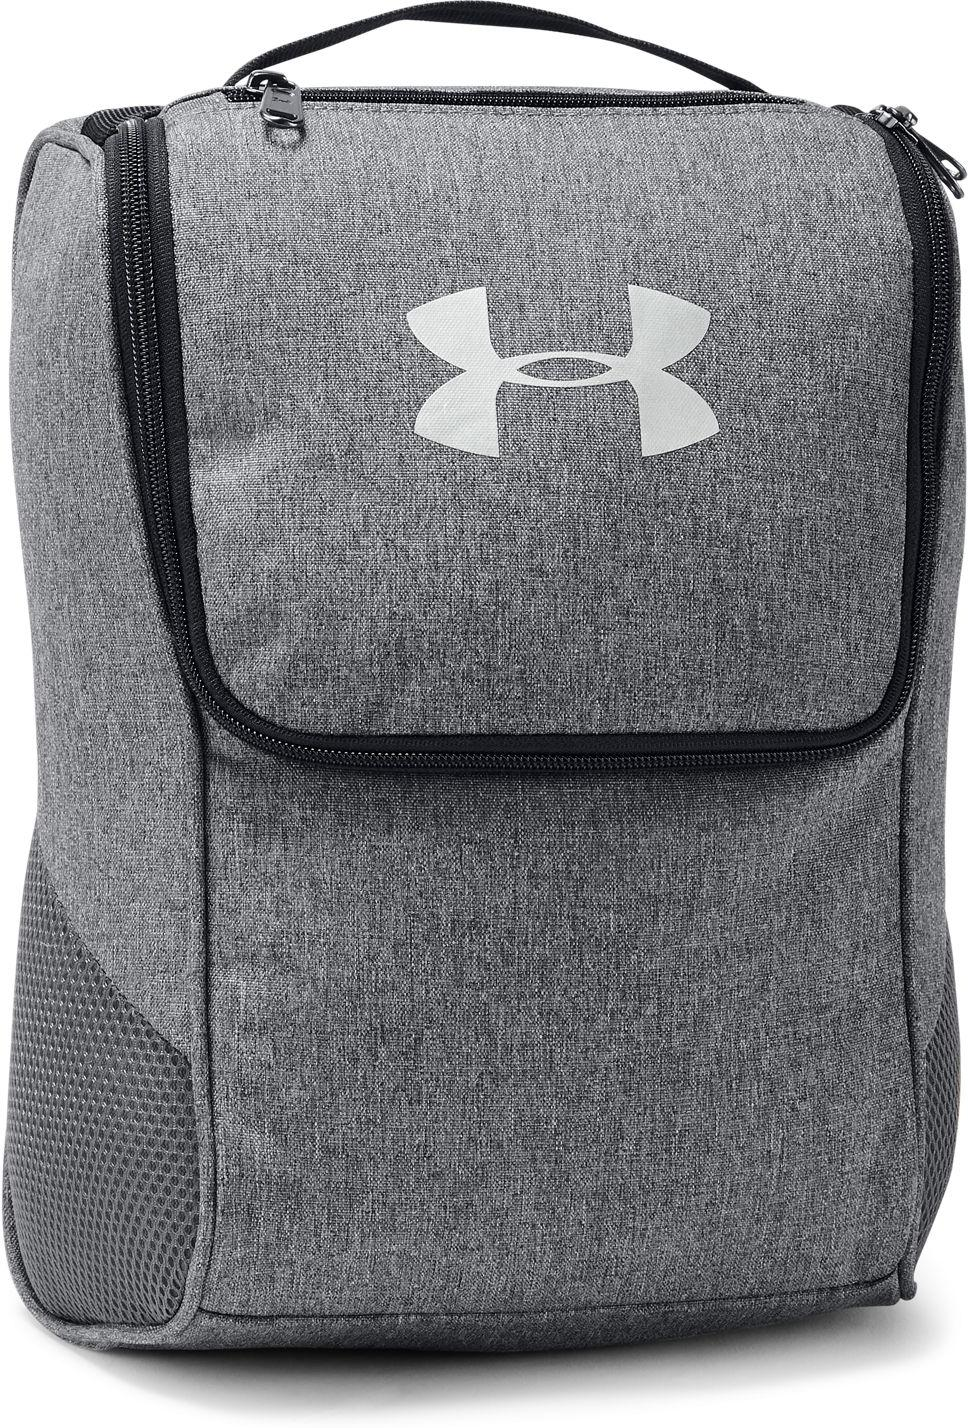 Sac à chaussures Under Armour UA Shoe Bag